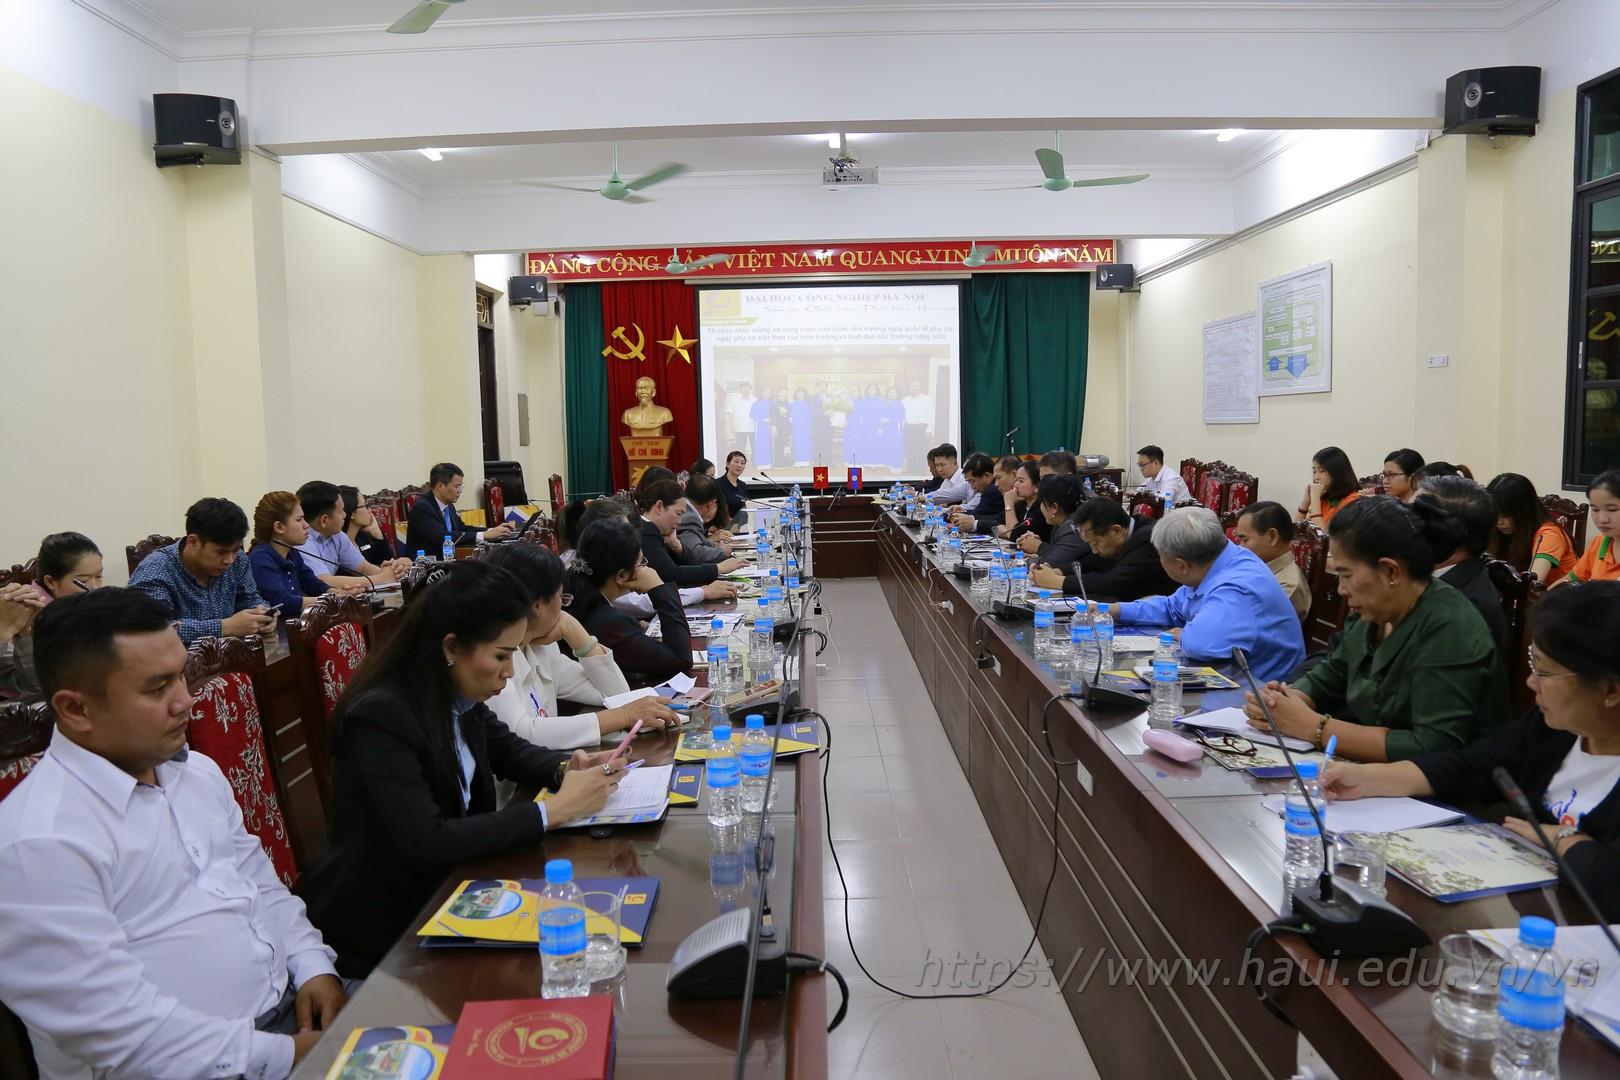 Hanoi University of Industry and Laos' Ministry of Education and Sports talk on gender equality and women's advancements